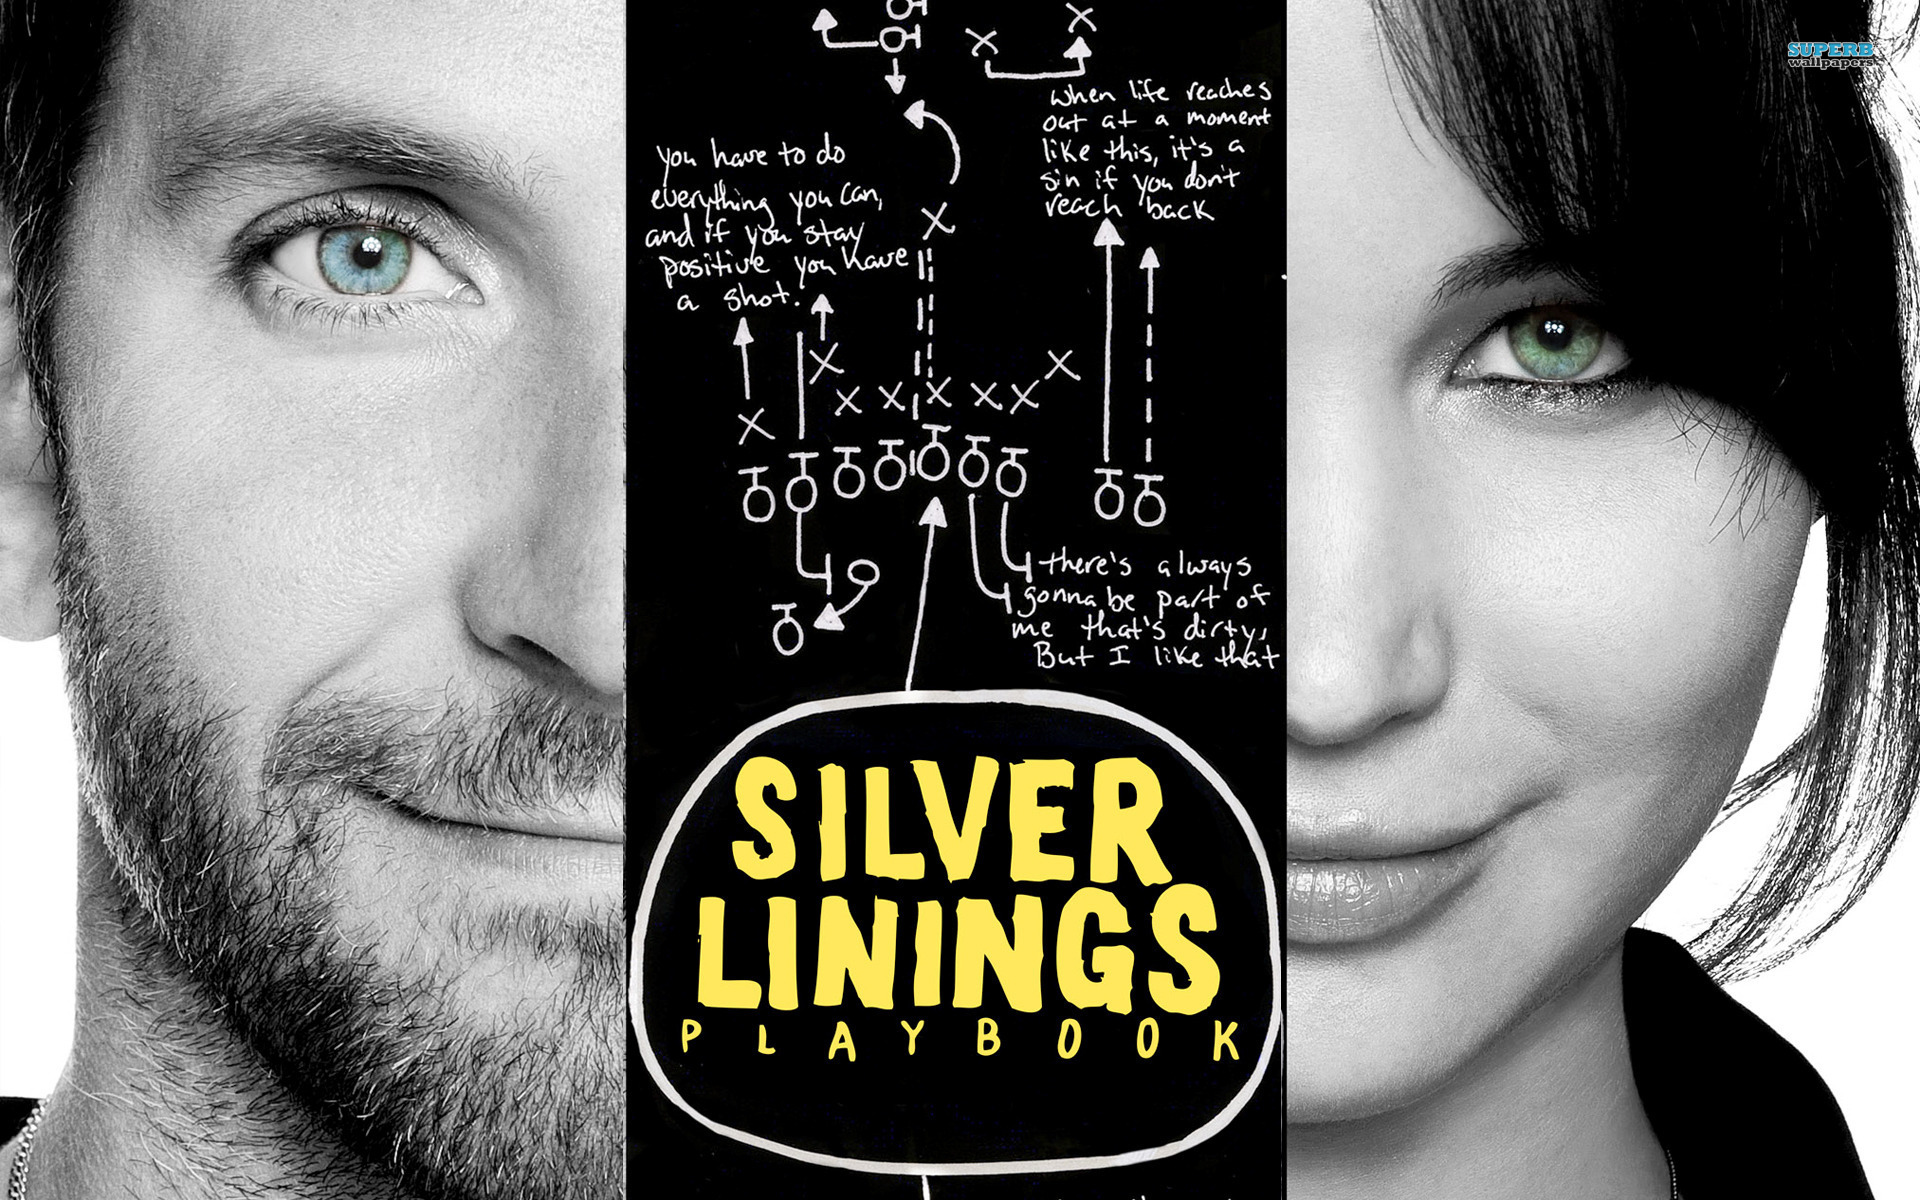 بوستر فيلم Silver Linings Playbook